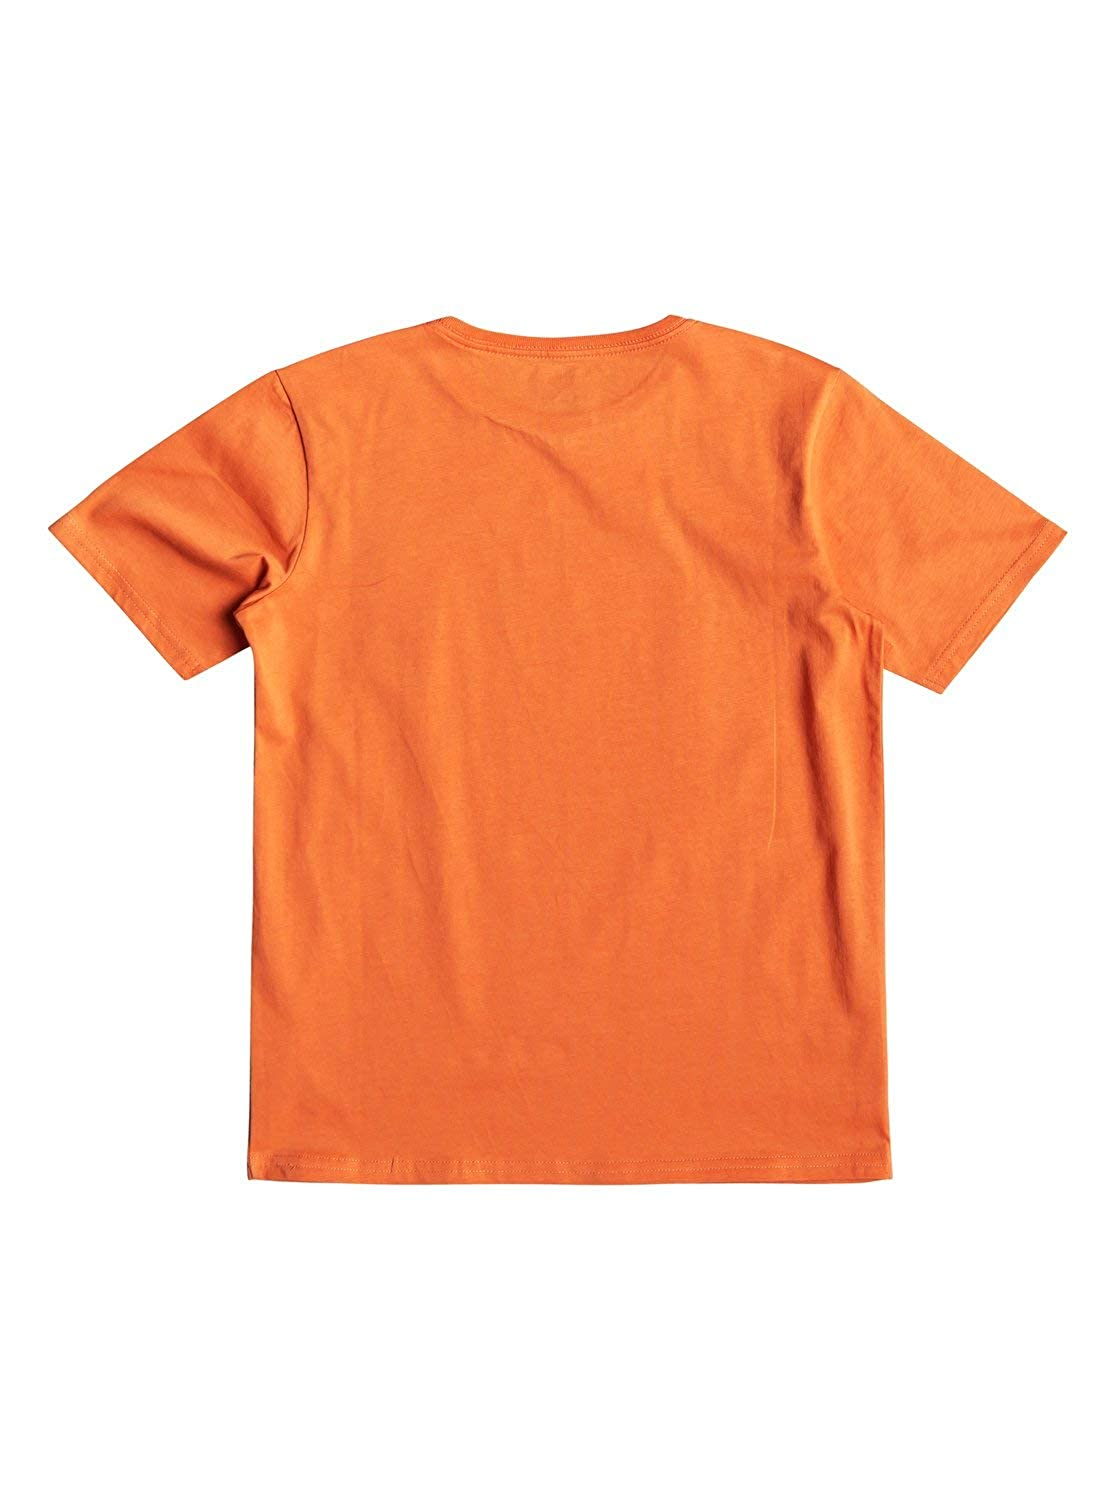 Quiksilver Childrens Heat Stroke Tee-Shirt